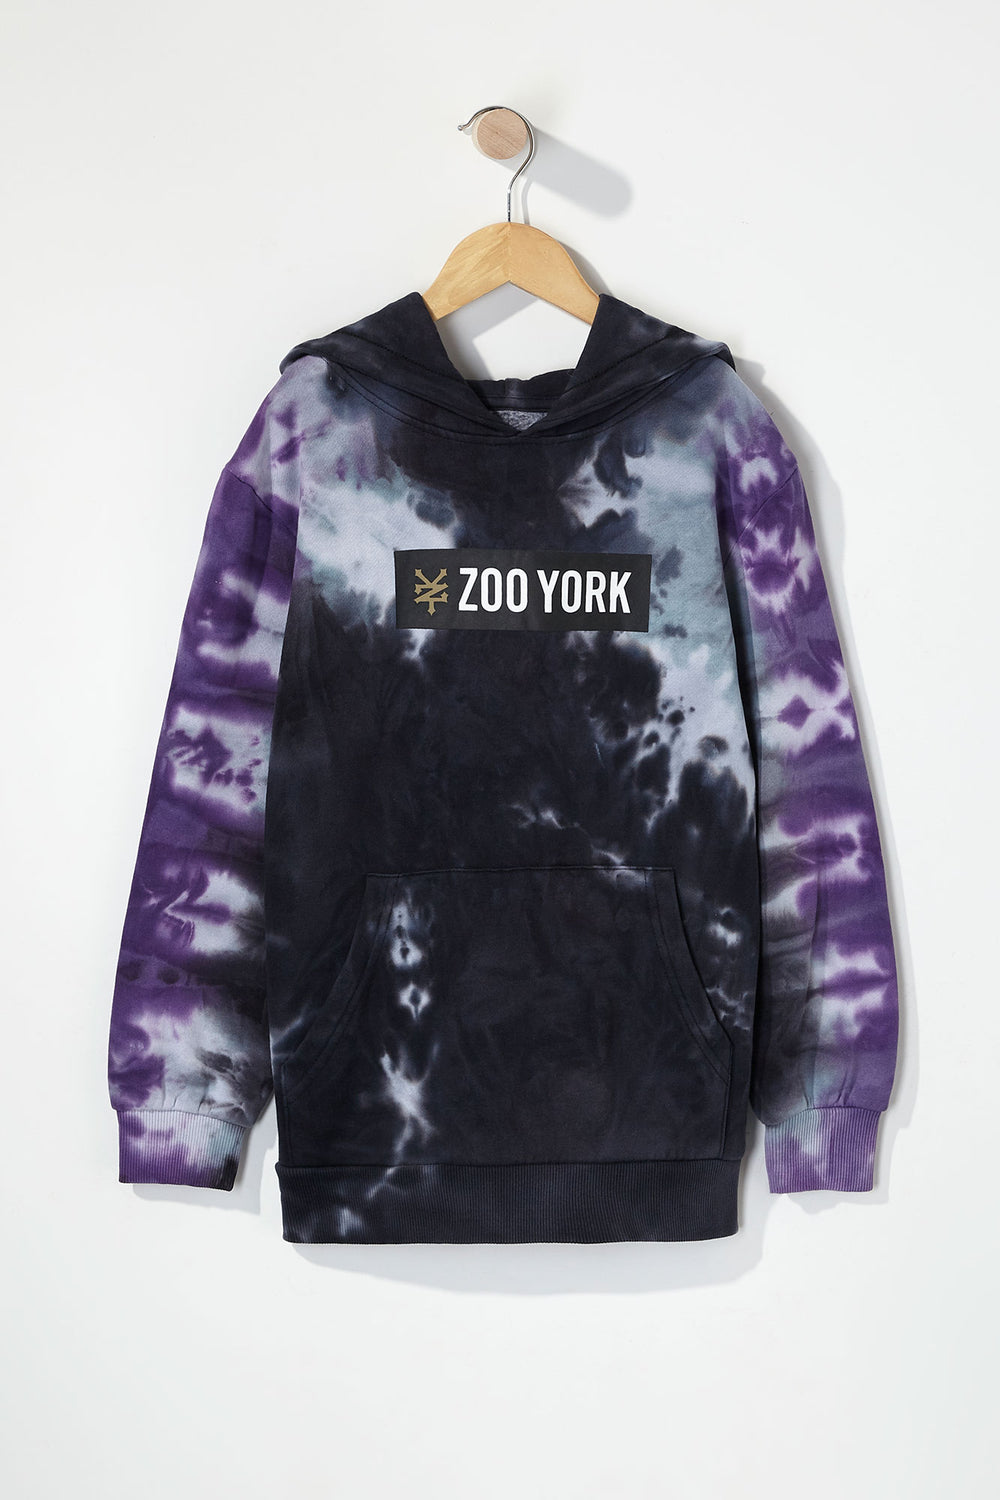 Zoo York Boys Box Logo Tie-Dye Hoodie Black